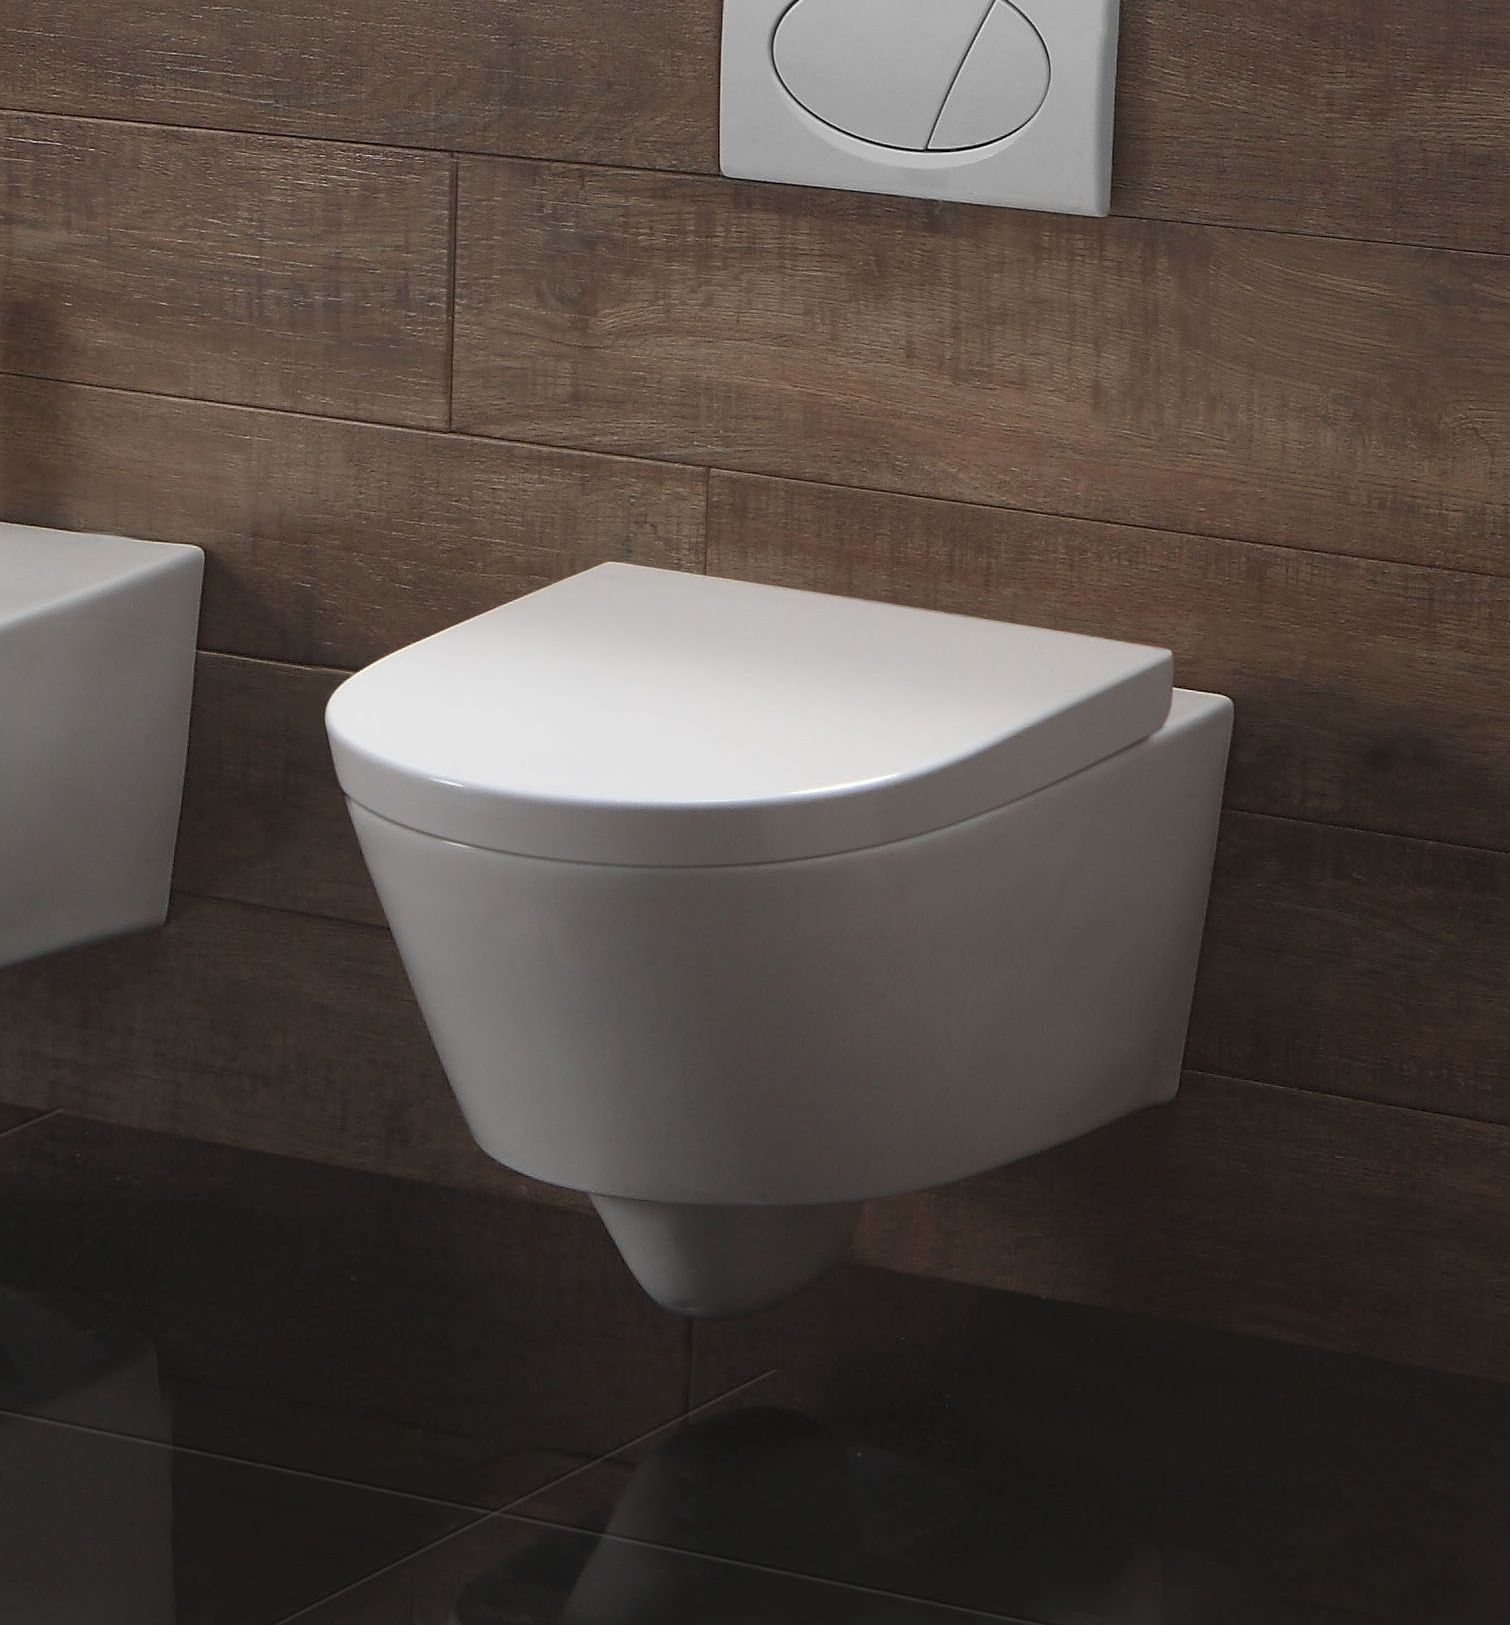 Wand-WC inkl. Soft-Close Sitz WH-6151